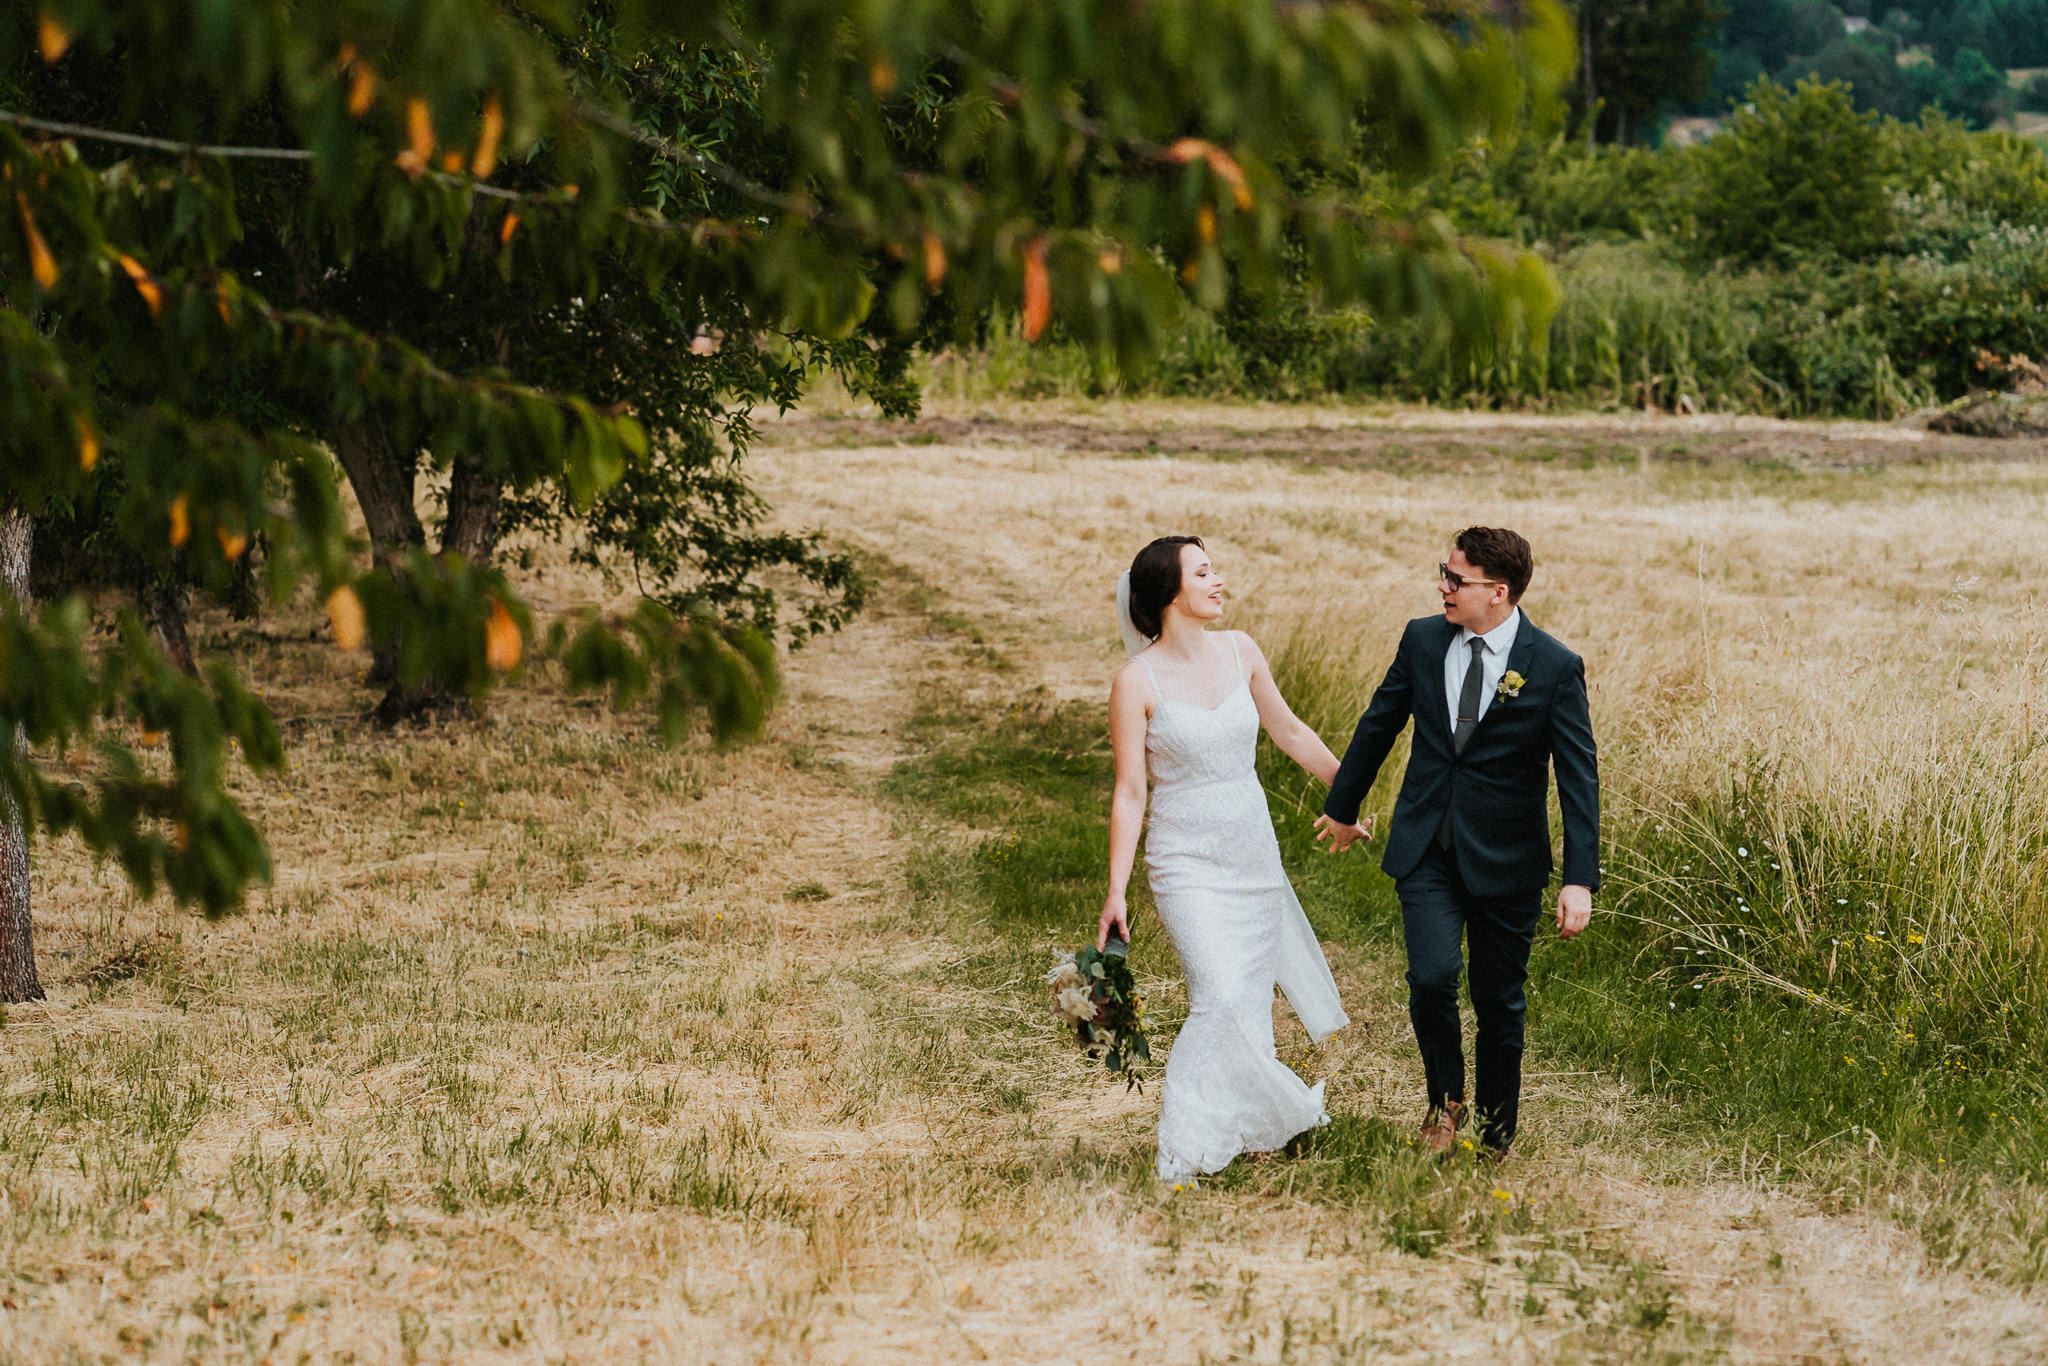 Bride Groom Laugh Walking Lifestyle Candid Photographer Alfred Tang